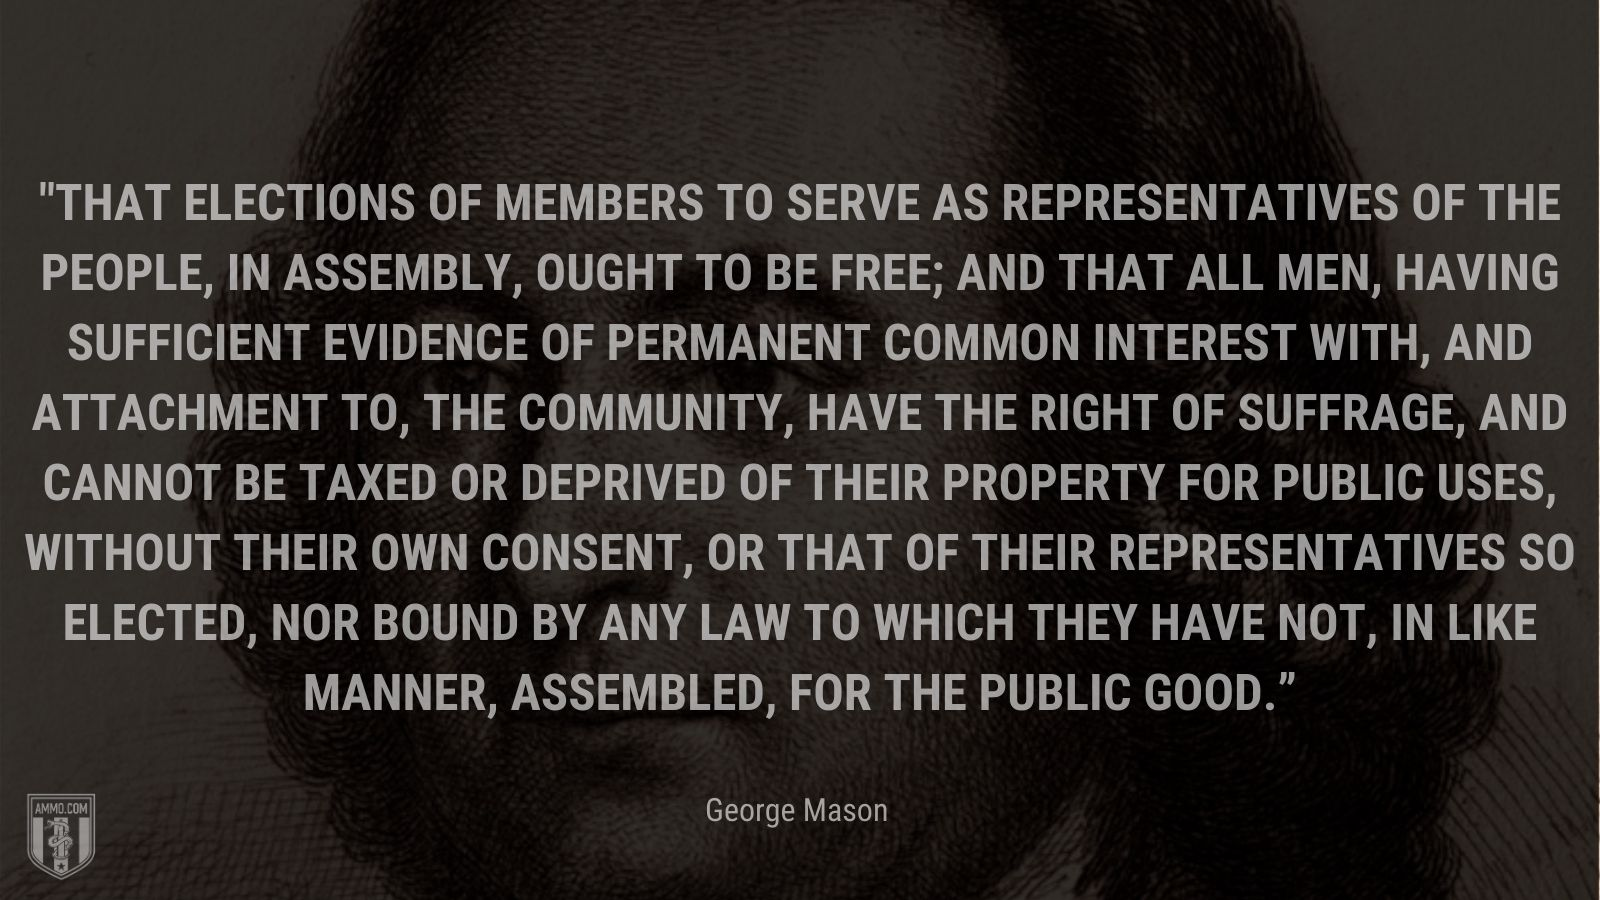 """""""That elections of members to serve as representatives of the people, in assembly, ought to be free; and that all men, having sufficient evidence of permanent common interest with, and attachment to, the community, have the right of suffrage, and cannot be taxed or deprived of their property for public uses, without their own consent, or that of their representatives so elected, nor bound by any law to which they have not, in like manner, assembled, for the public good."""" - George Mason"""